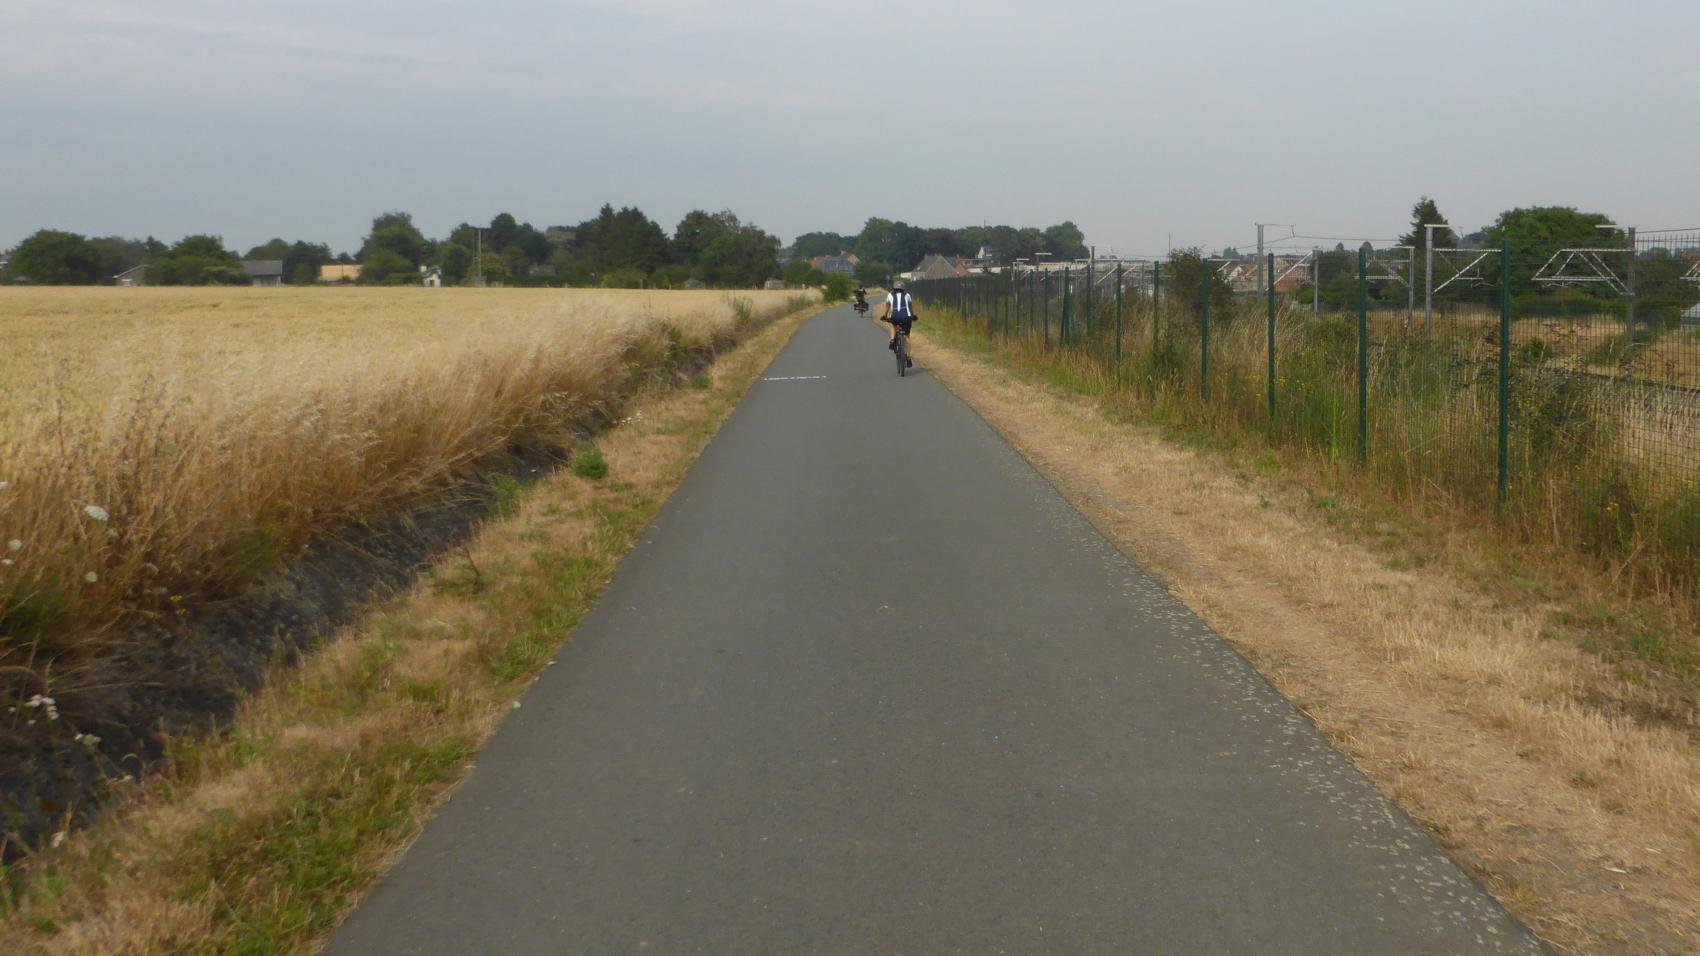 For most of its route, the F3 cycle highway follow the high speed railroad connecting Brussels with Germany. This alignment makes it easy to find and follow.